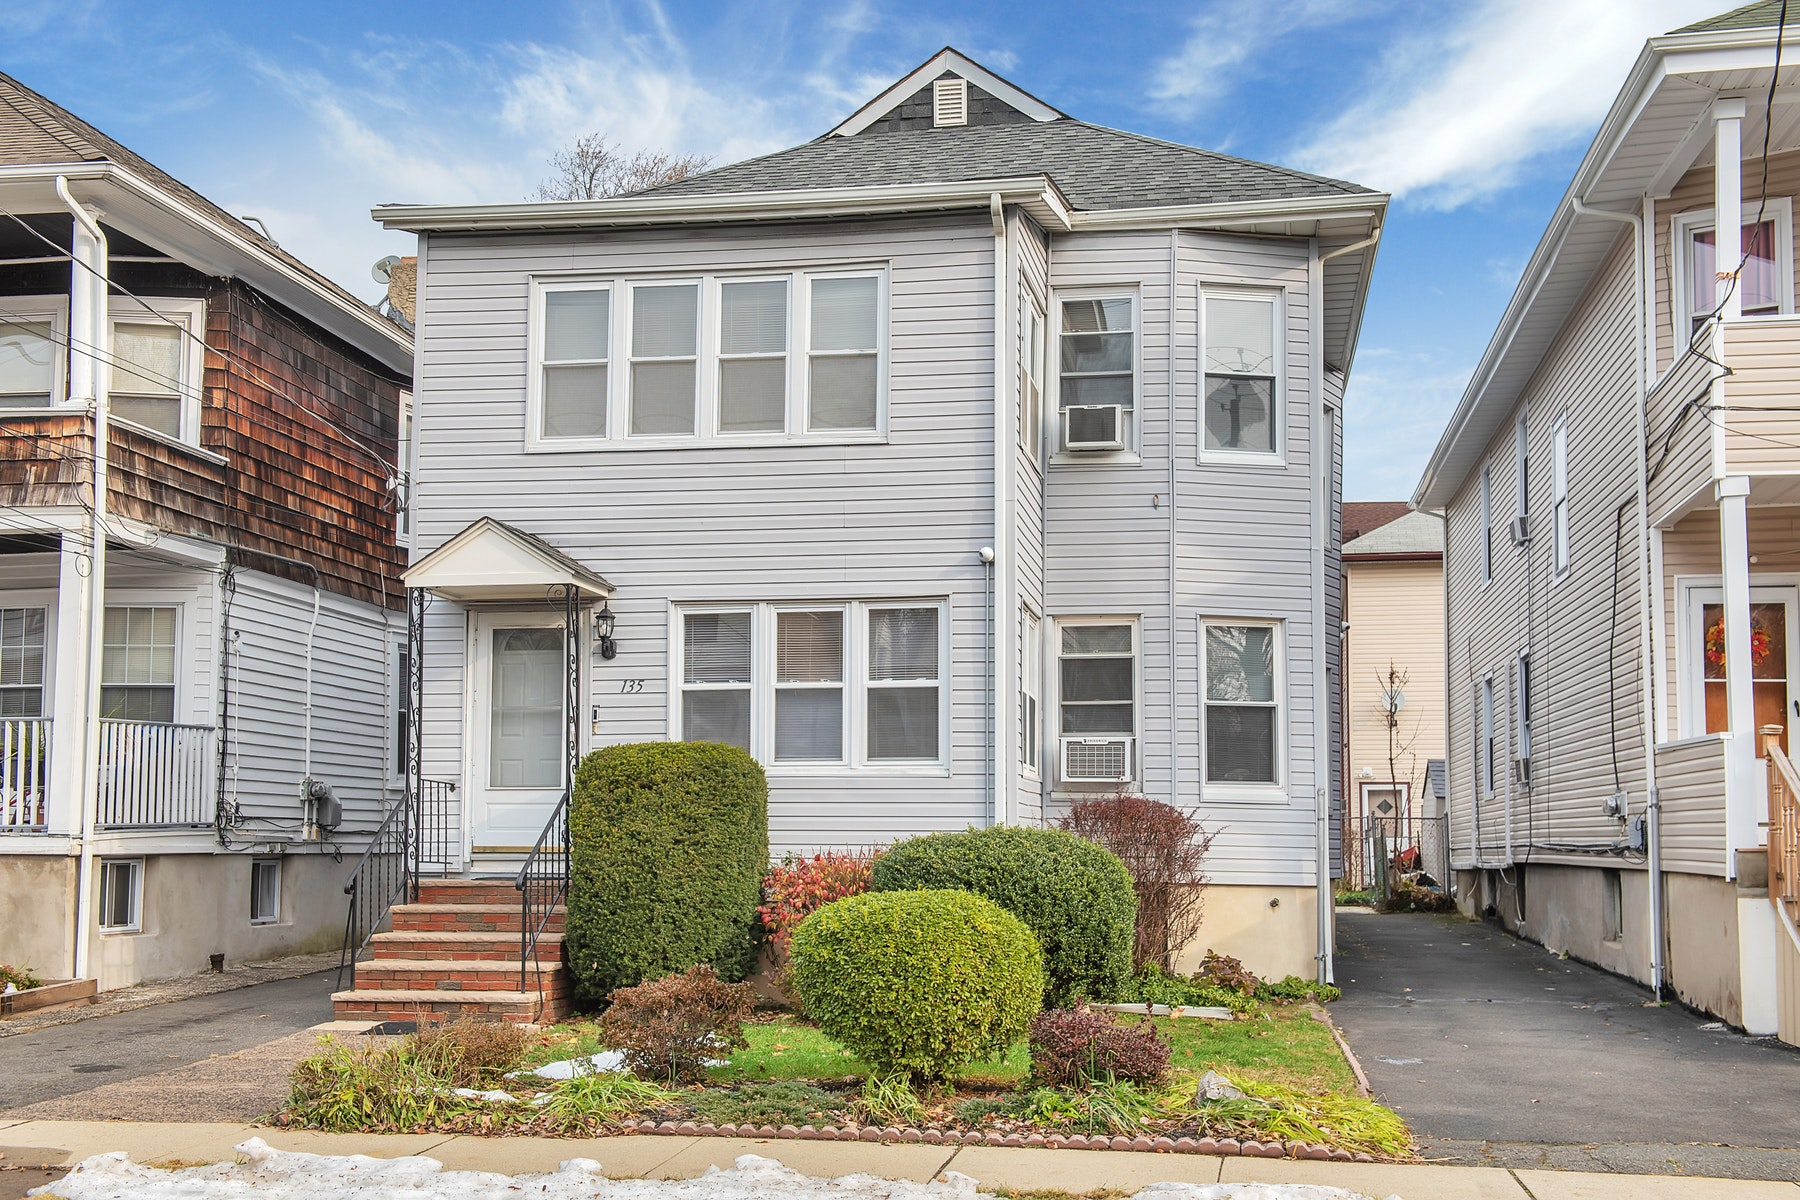 Other Residential for Rent at Spacious First Floor Unit 135 Claremont Avenue, #1, Montclair, New Jersey 07042 United States